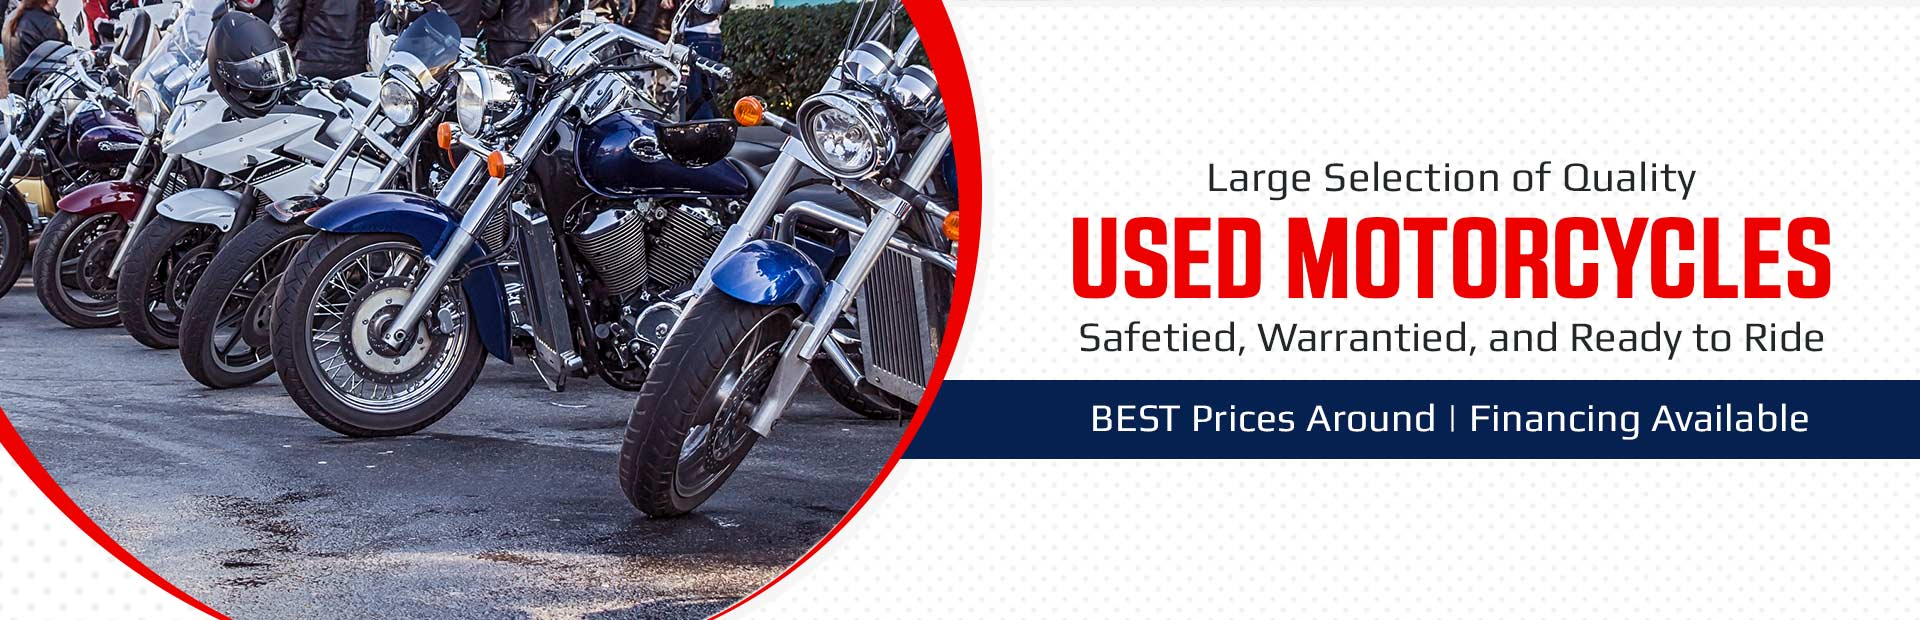 We have a large selection of quality used motorcycles safetied, warrantied, and ready to ride, plus we have the best prices around! Financing is available.